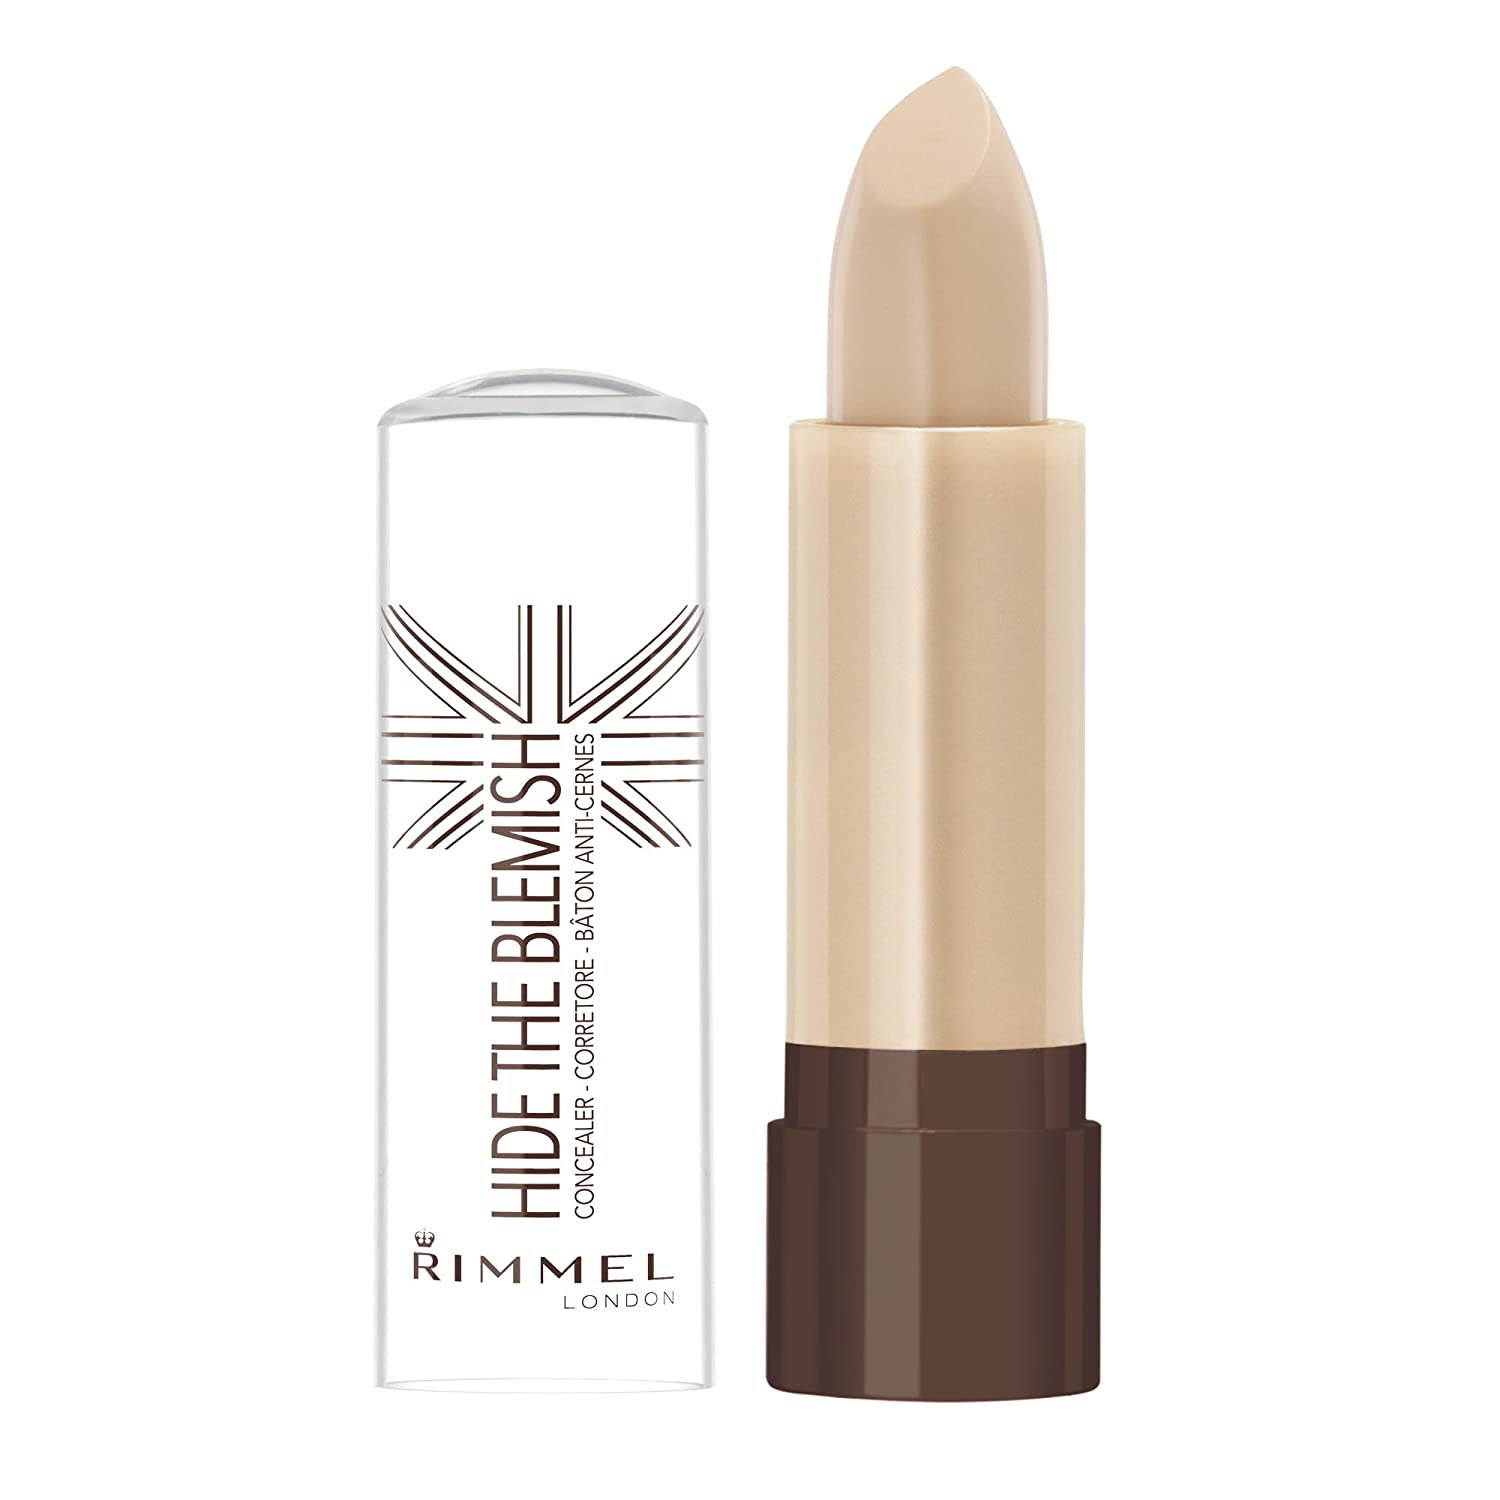 Rimmel London - Hide The Blemish Concealer Coty